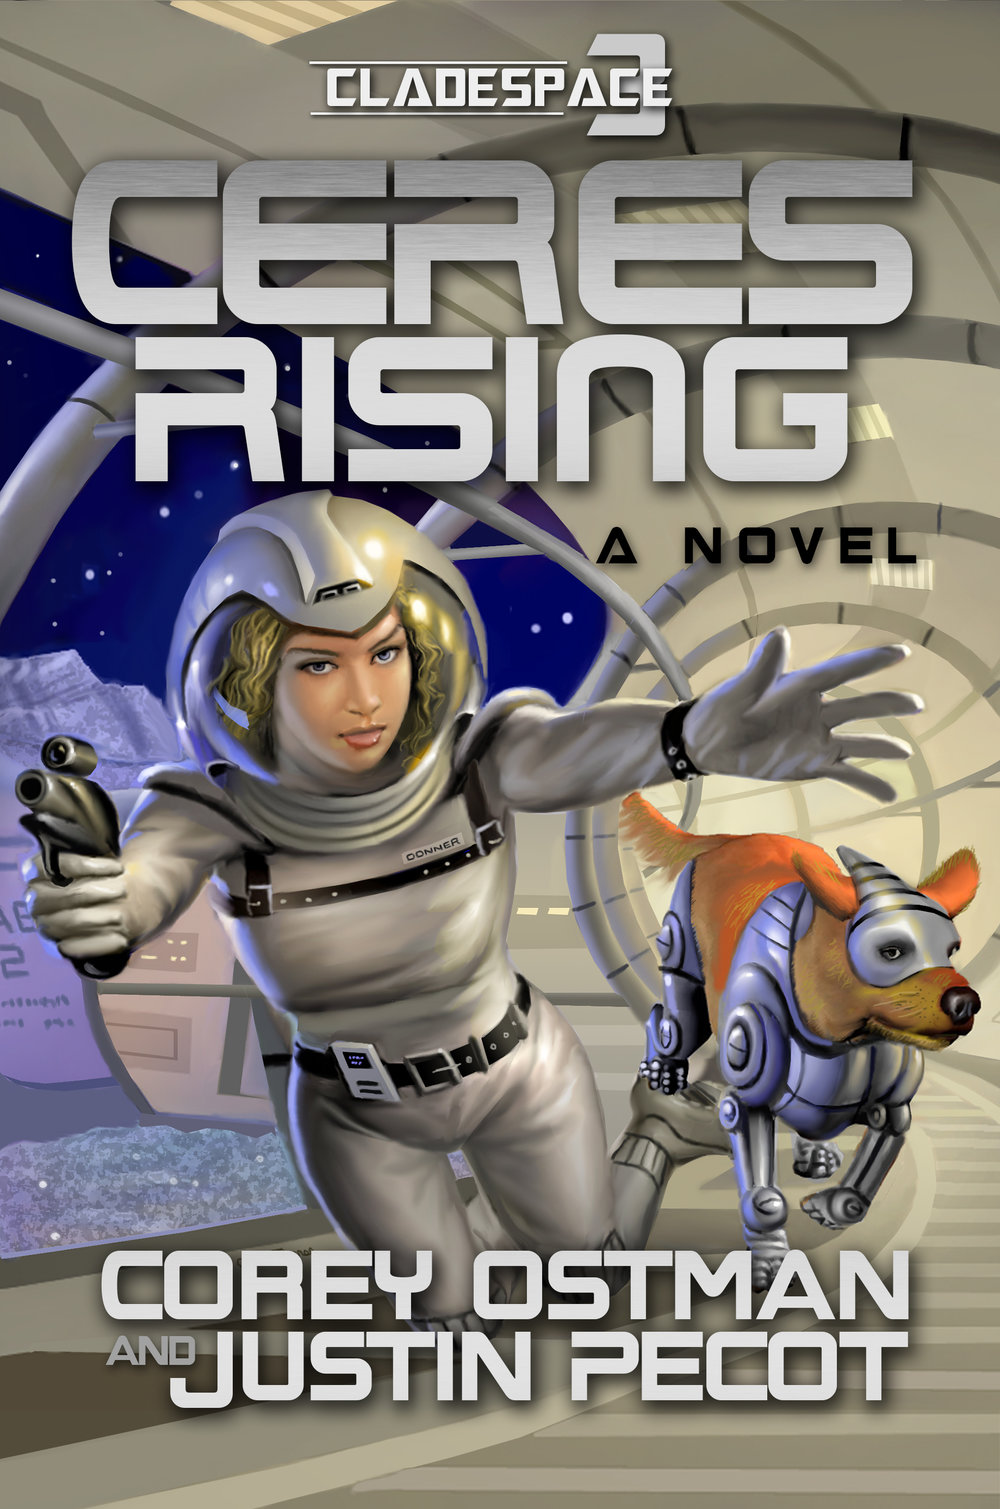 ceres-rising-ebook-cover.jpg